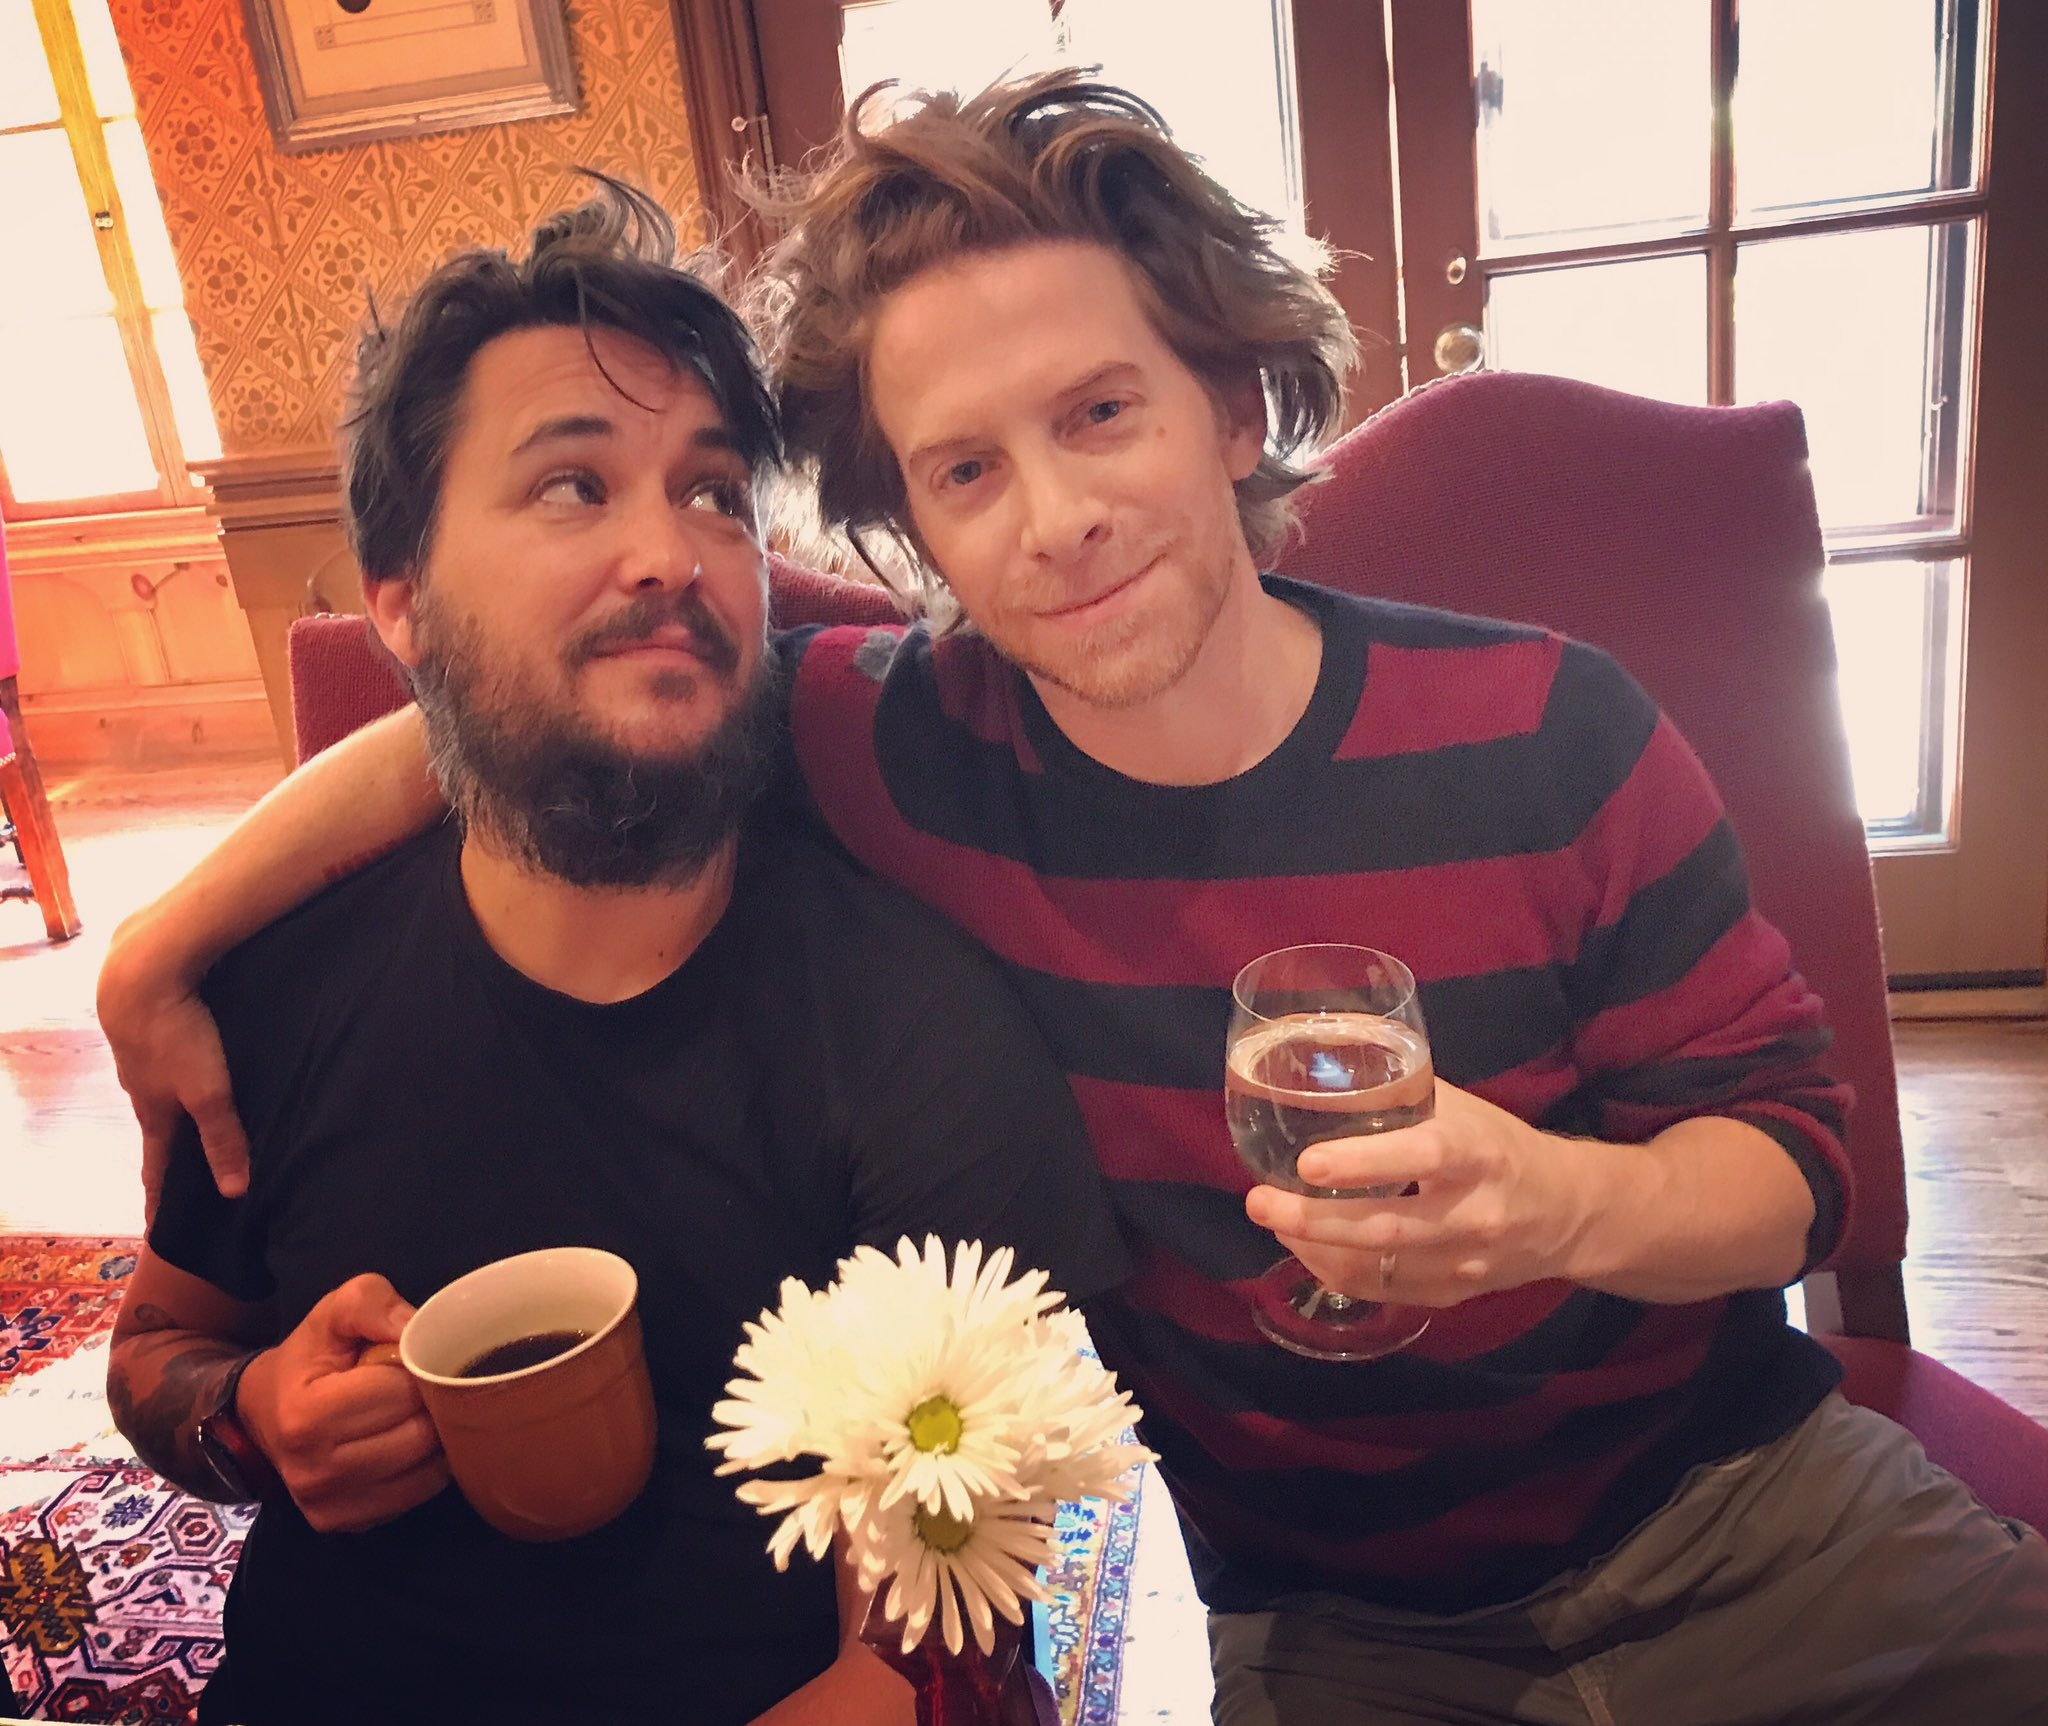 RT @SethGreen: Here's that picture of me and @wilw you didn't know you needed. https://t.co/5tOiKnAVR4